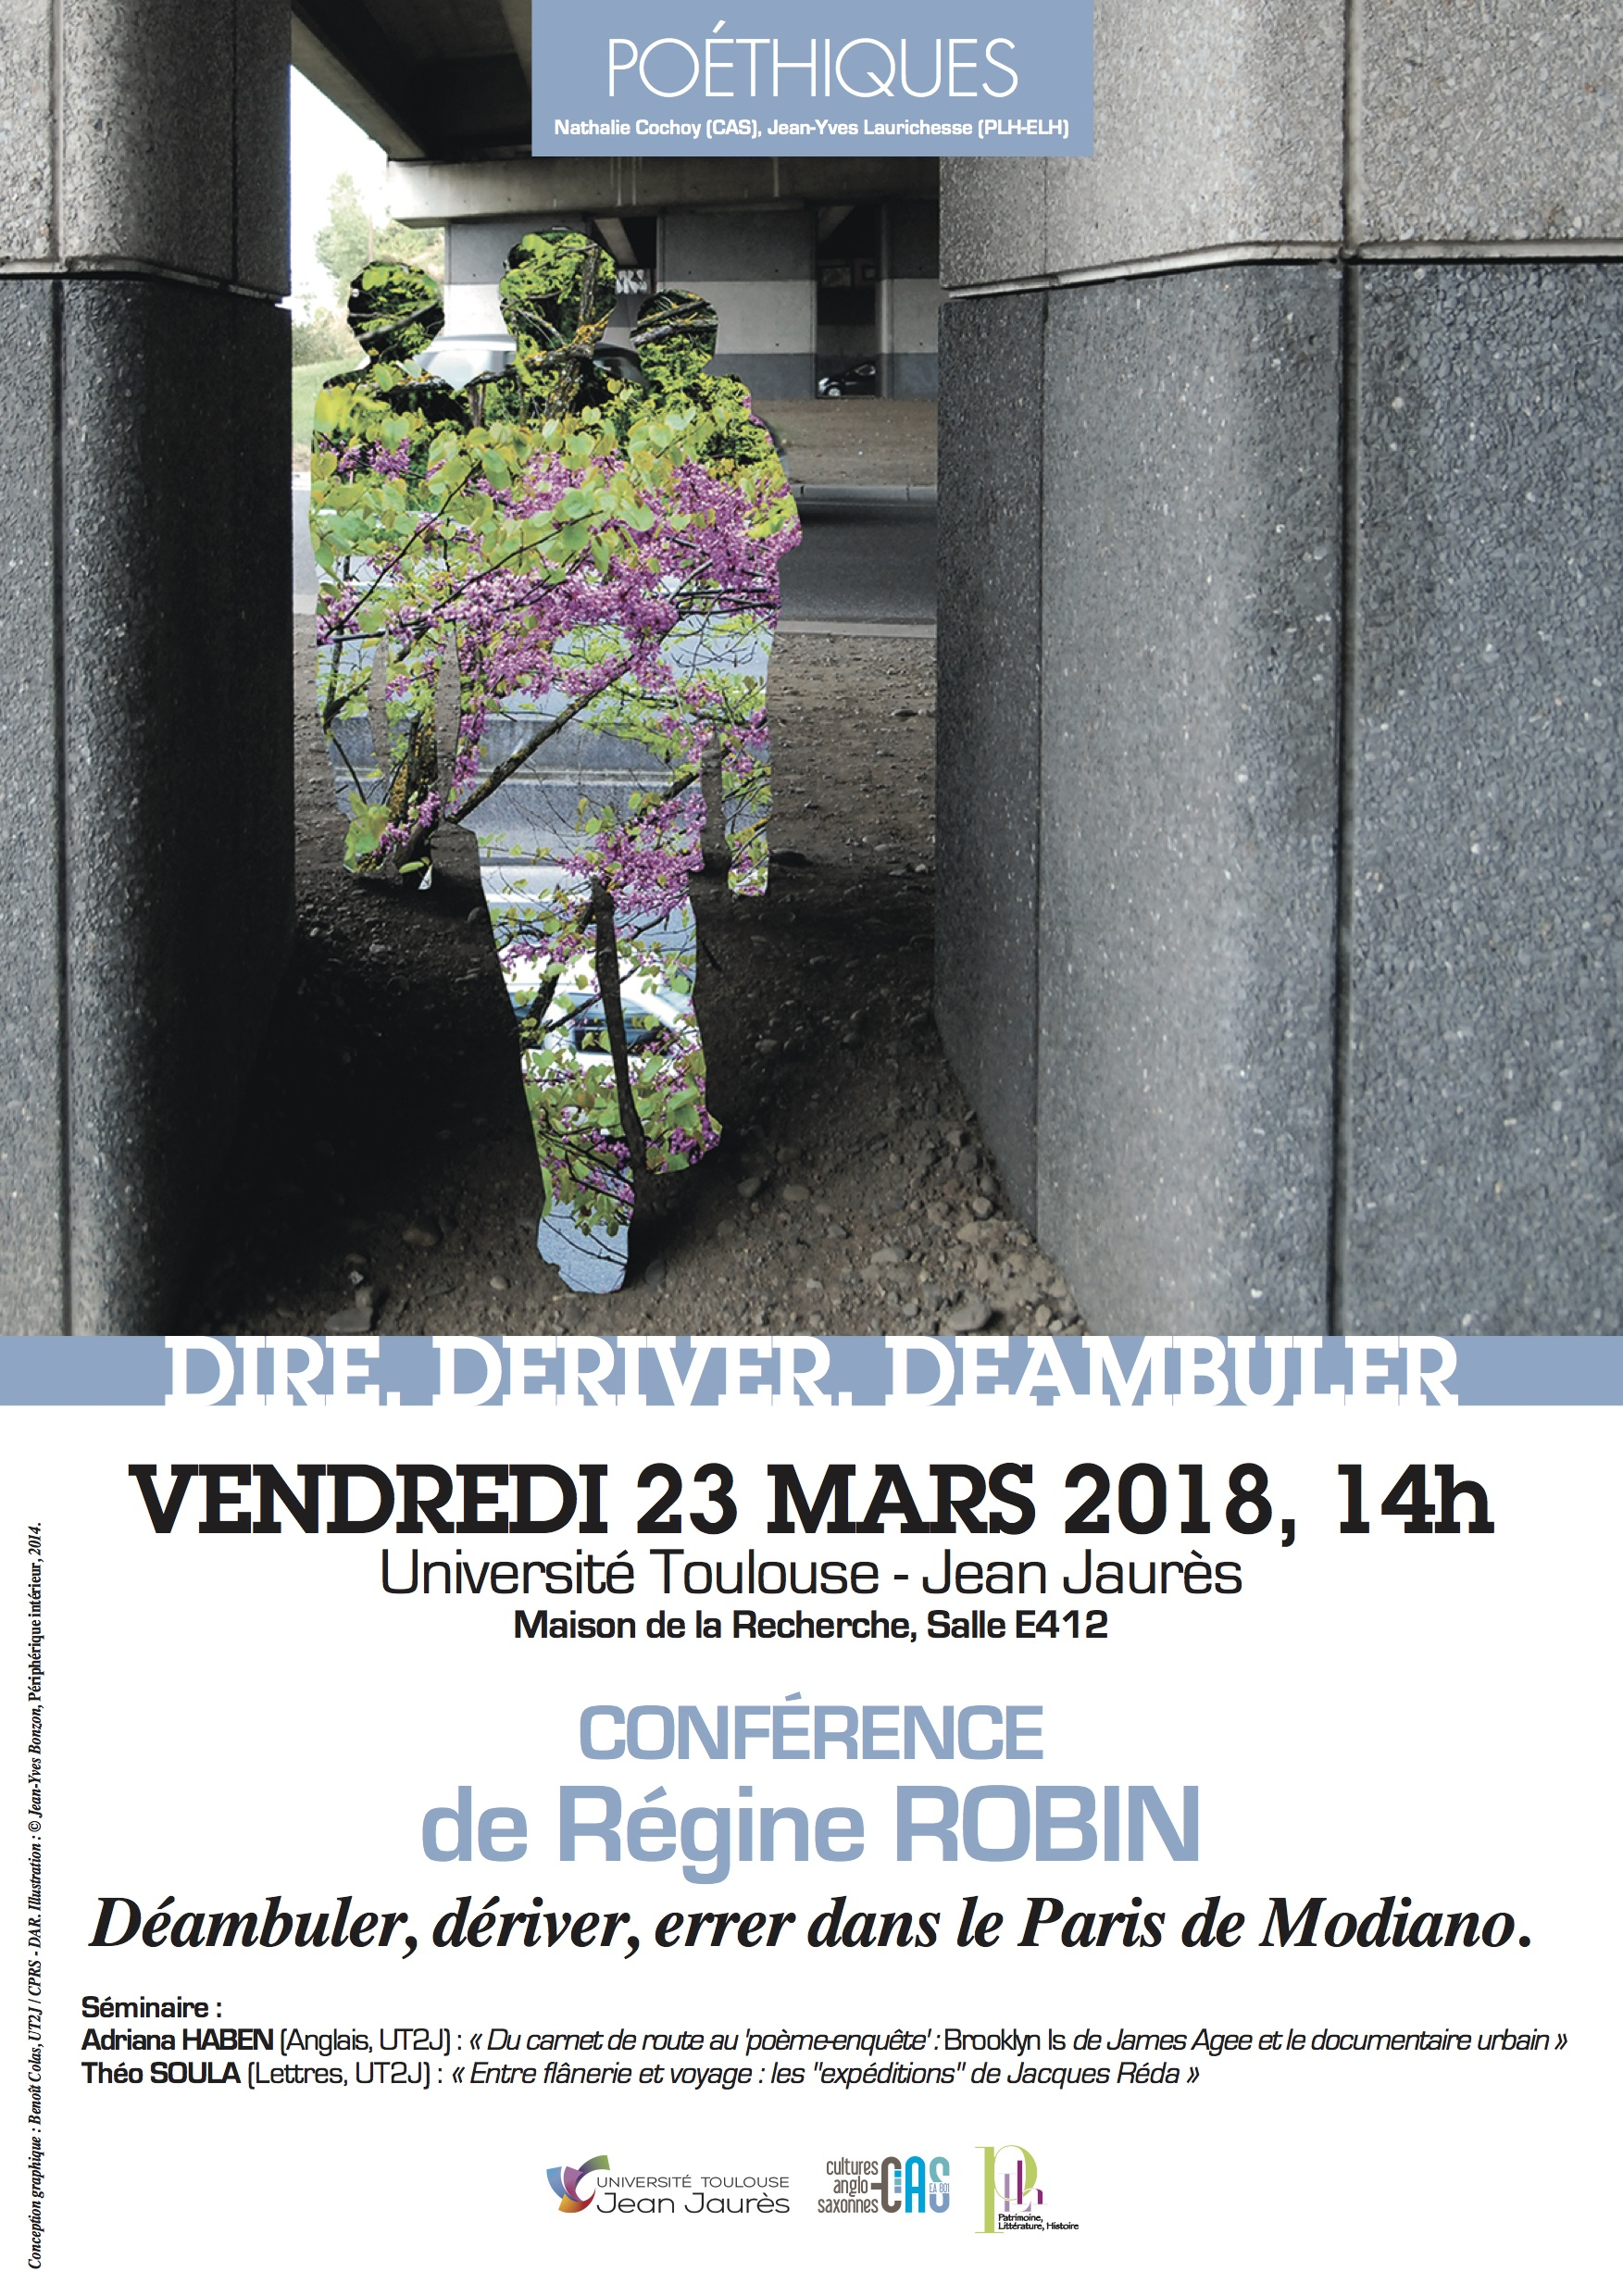 Affiche Poe_thiques Re_gine Robin.jpg